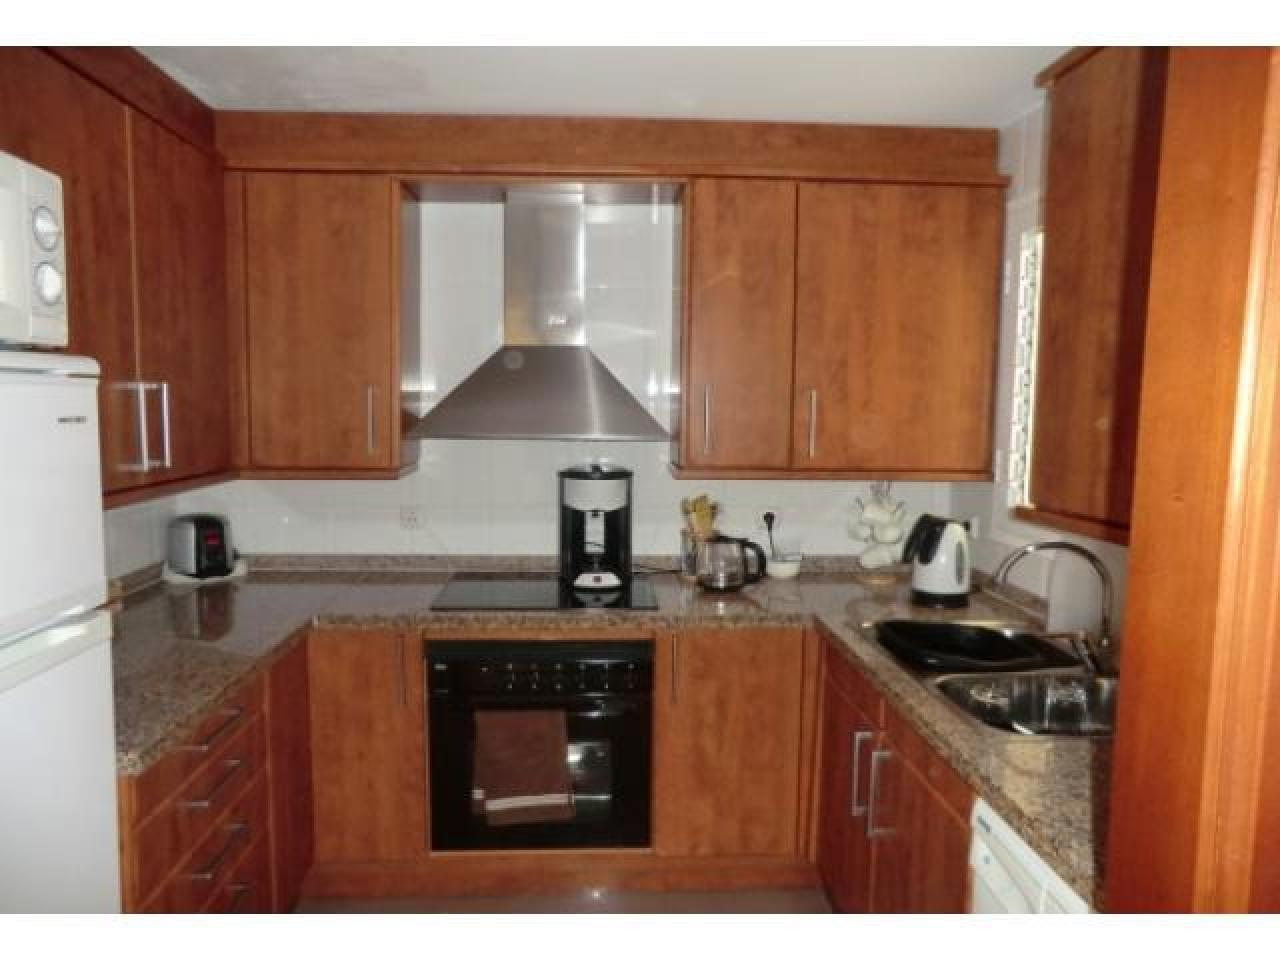 Real estate in Tenerife for sale » #250 - 3